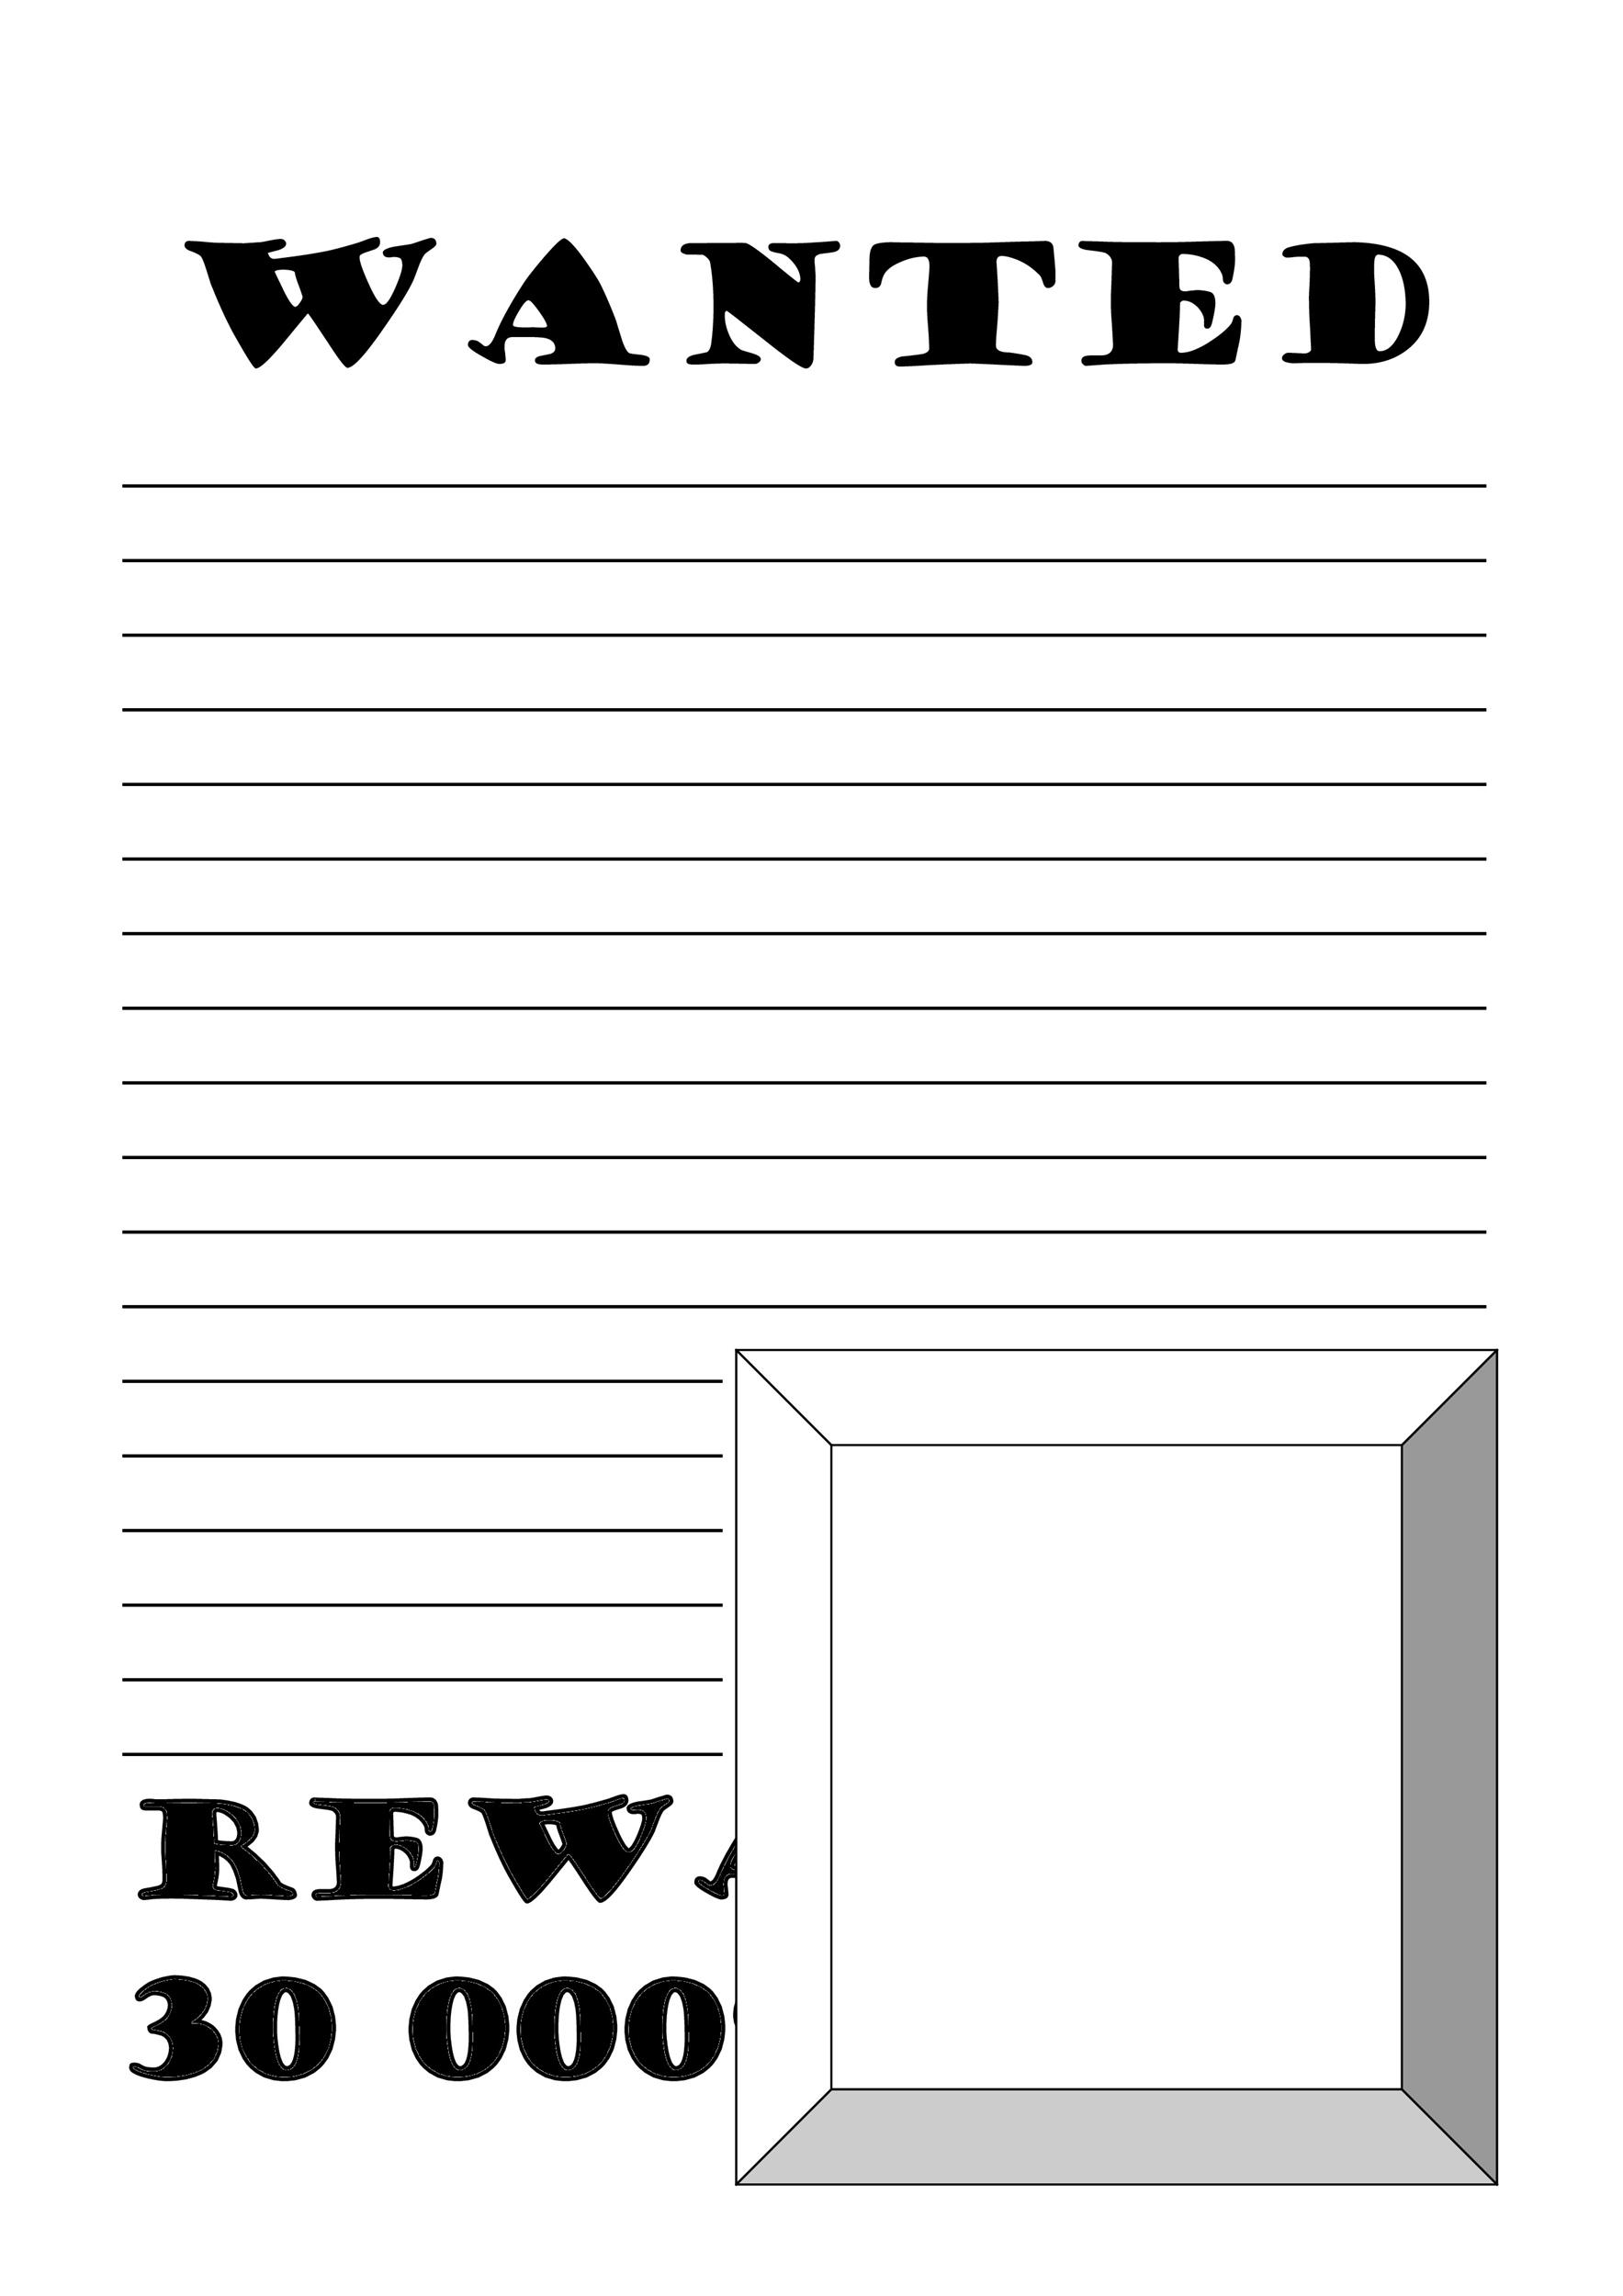 Printable Wanted Poster Template 01  Printable Wanted Poster Template